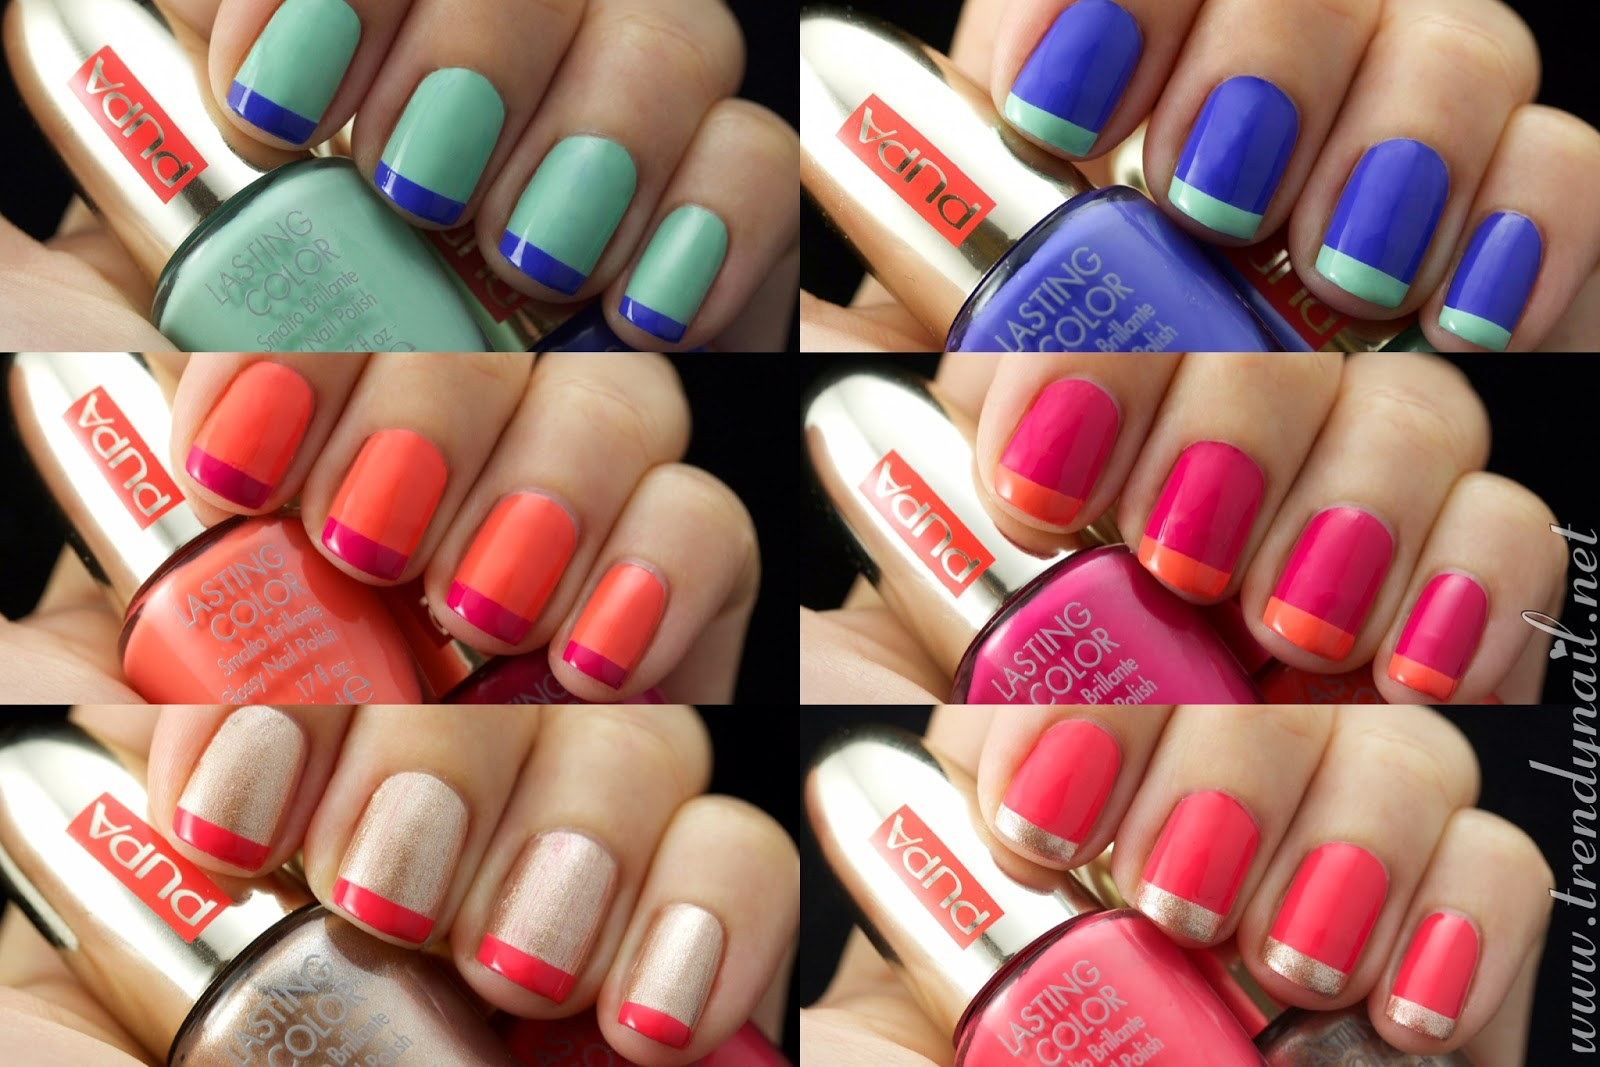 http://www.pupa.it/ita/pupa-nail-academy/Gallery-nail-academy/swatches-smalti-coral-island.aspx